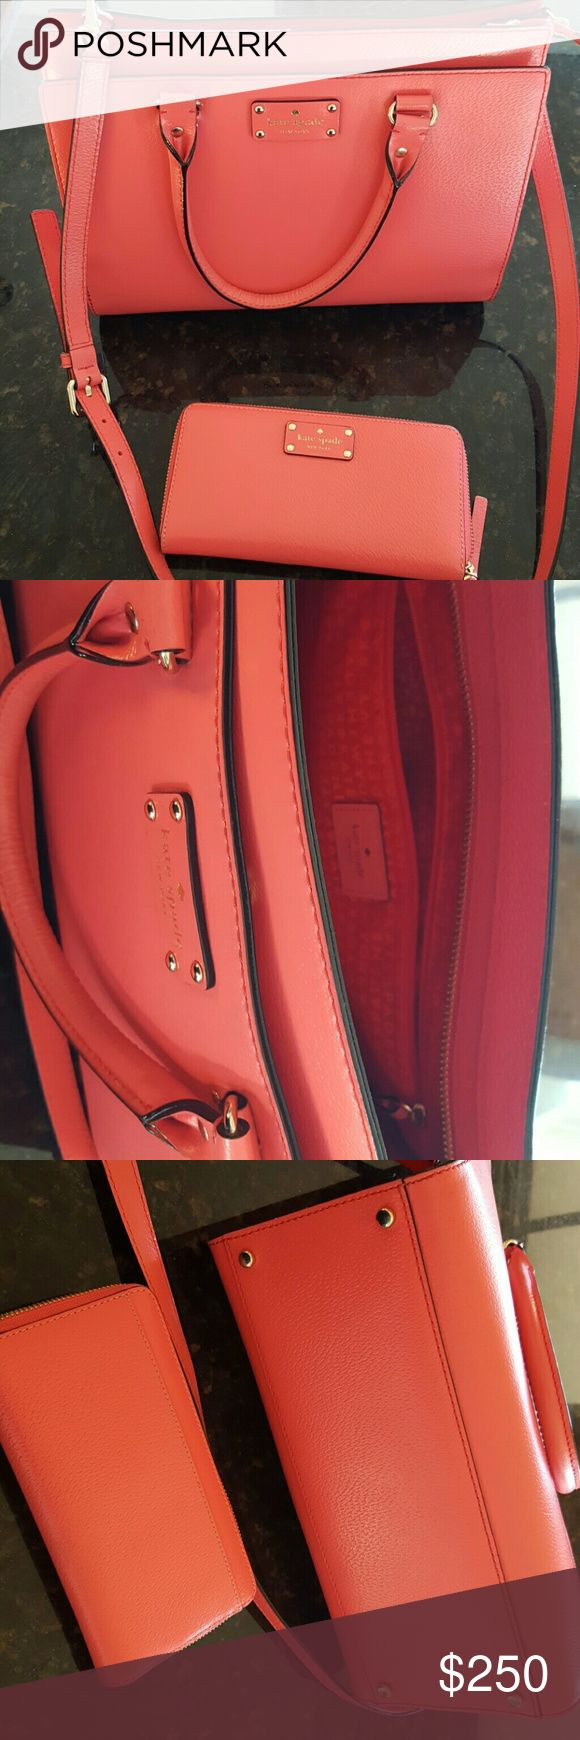 KATE SPADE Handbag and Wallet Beautiful Flamingo Color Kate Spade Set, used only a couple of times! kate spade Bags